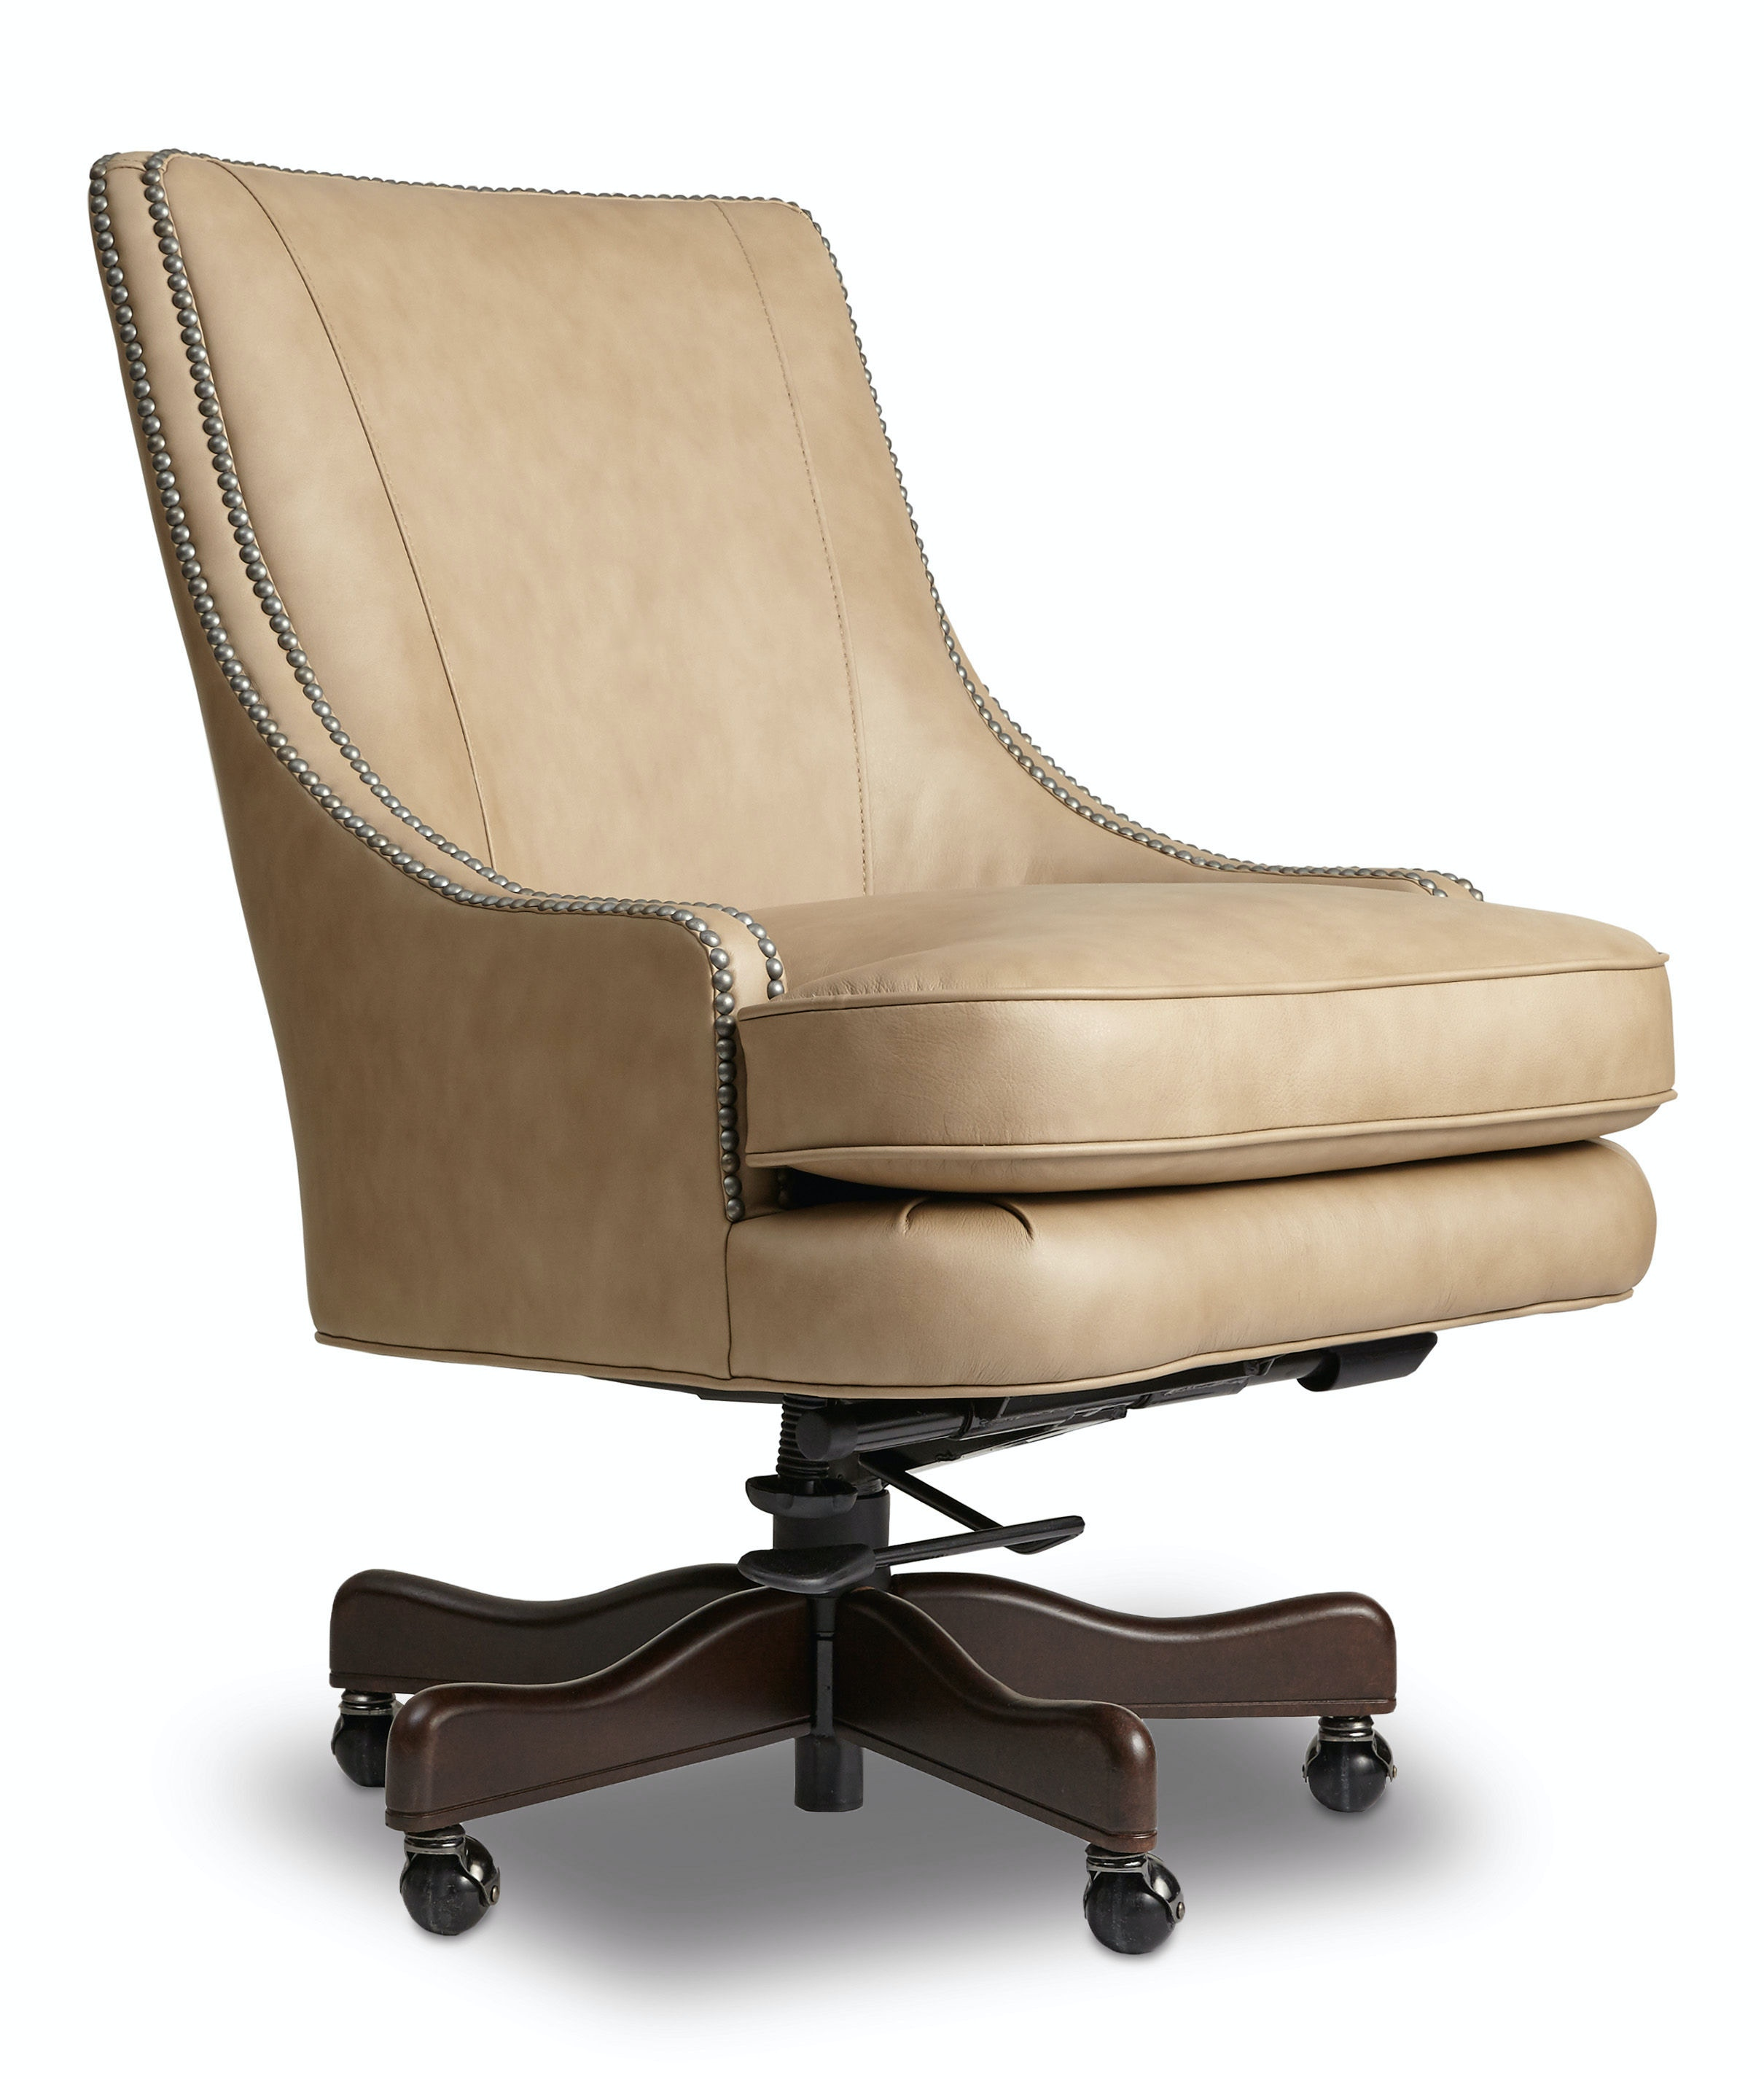 Patty Home Office Chair EC475-082